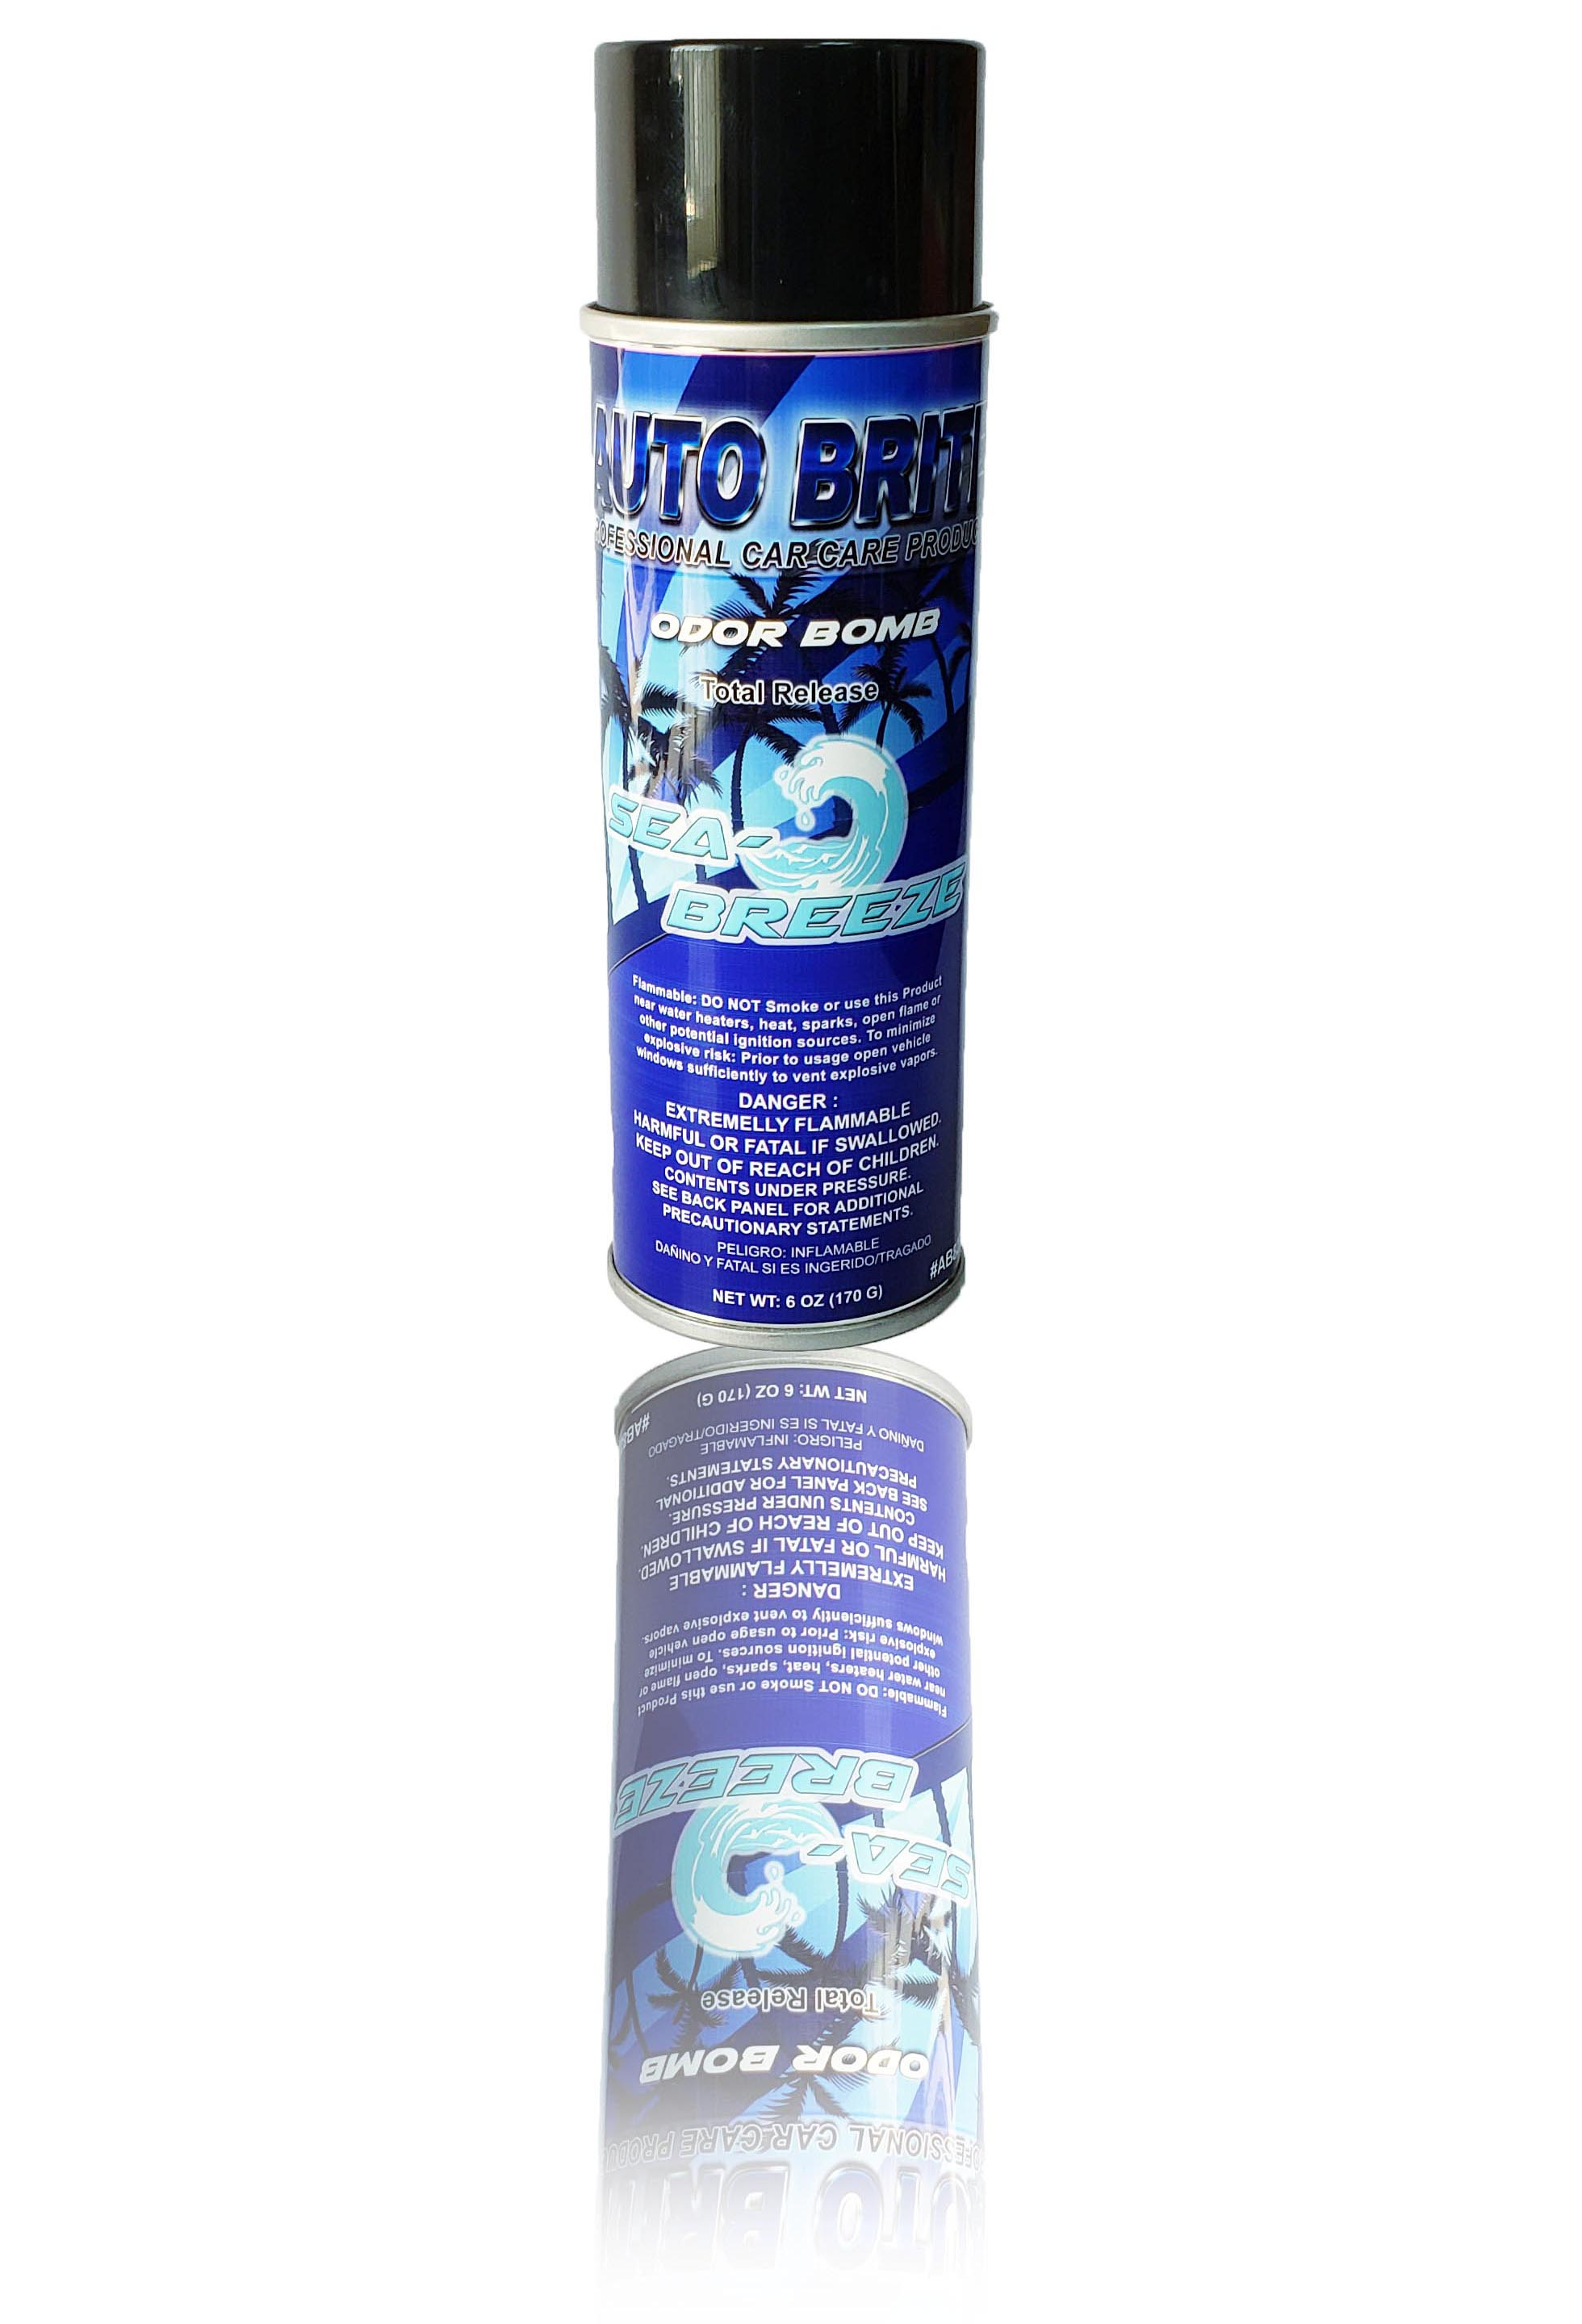 Sea Breeze Odor Bombs